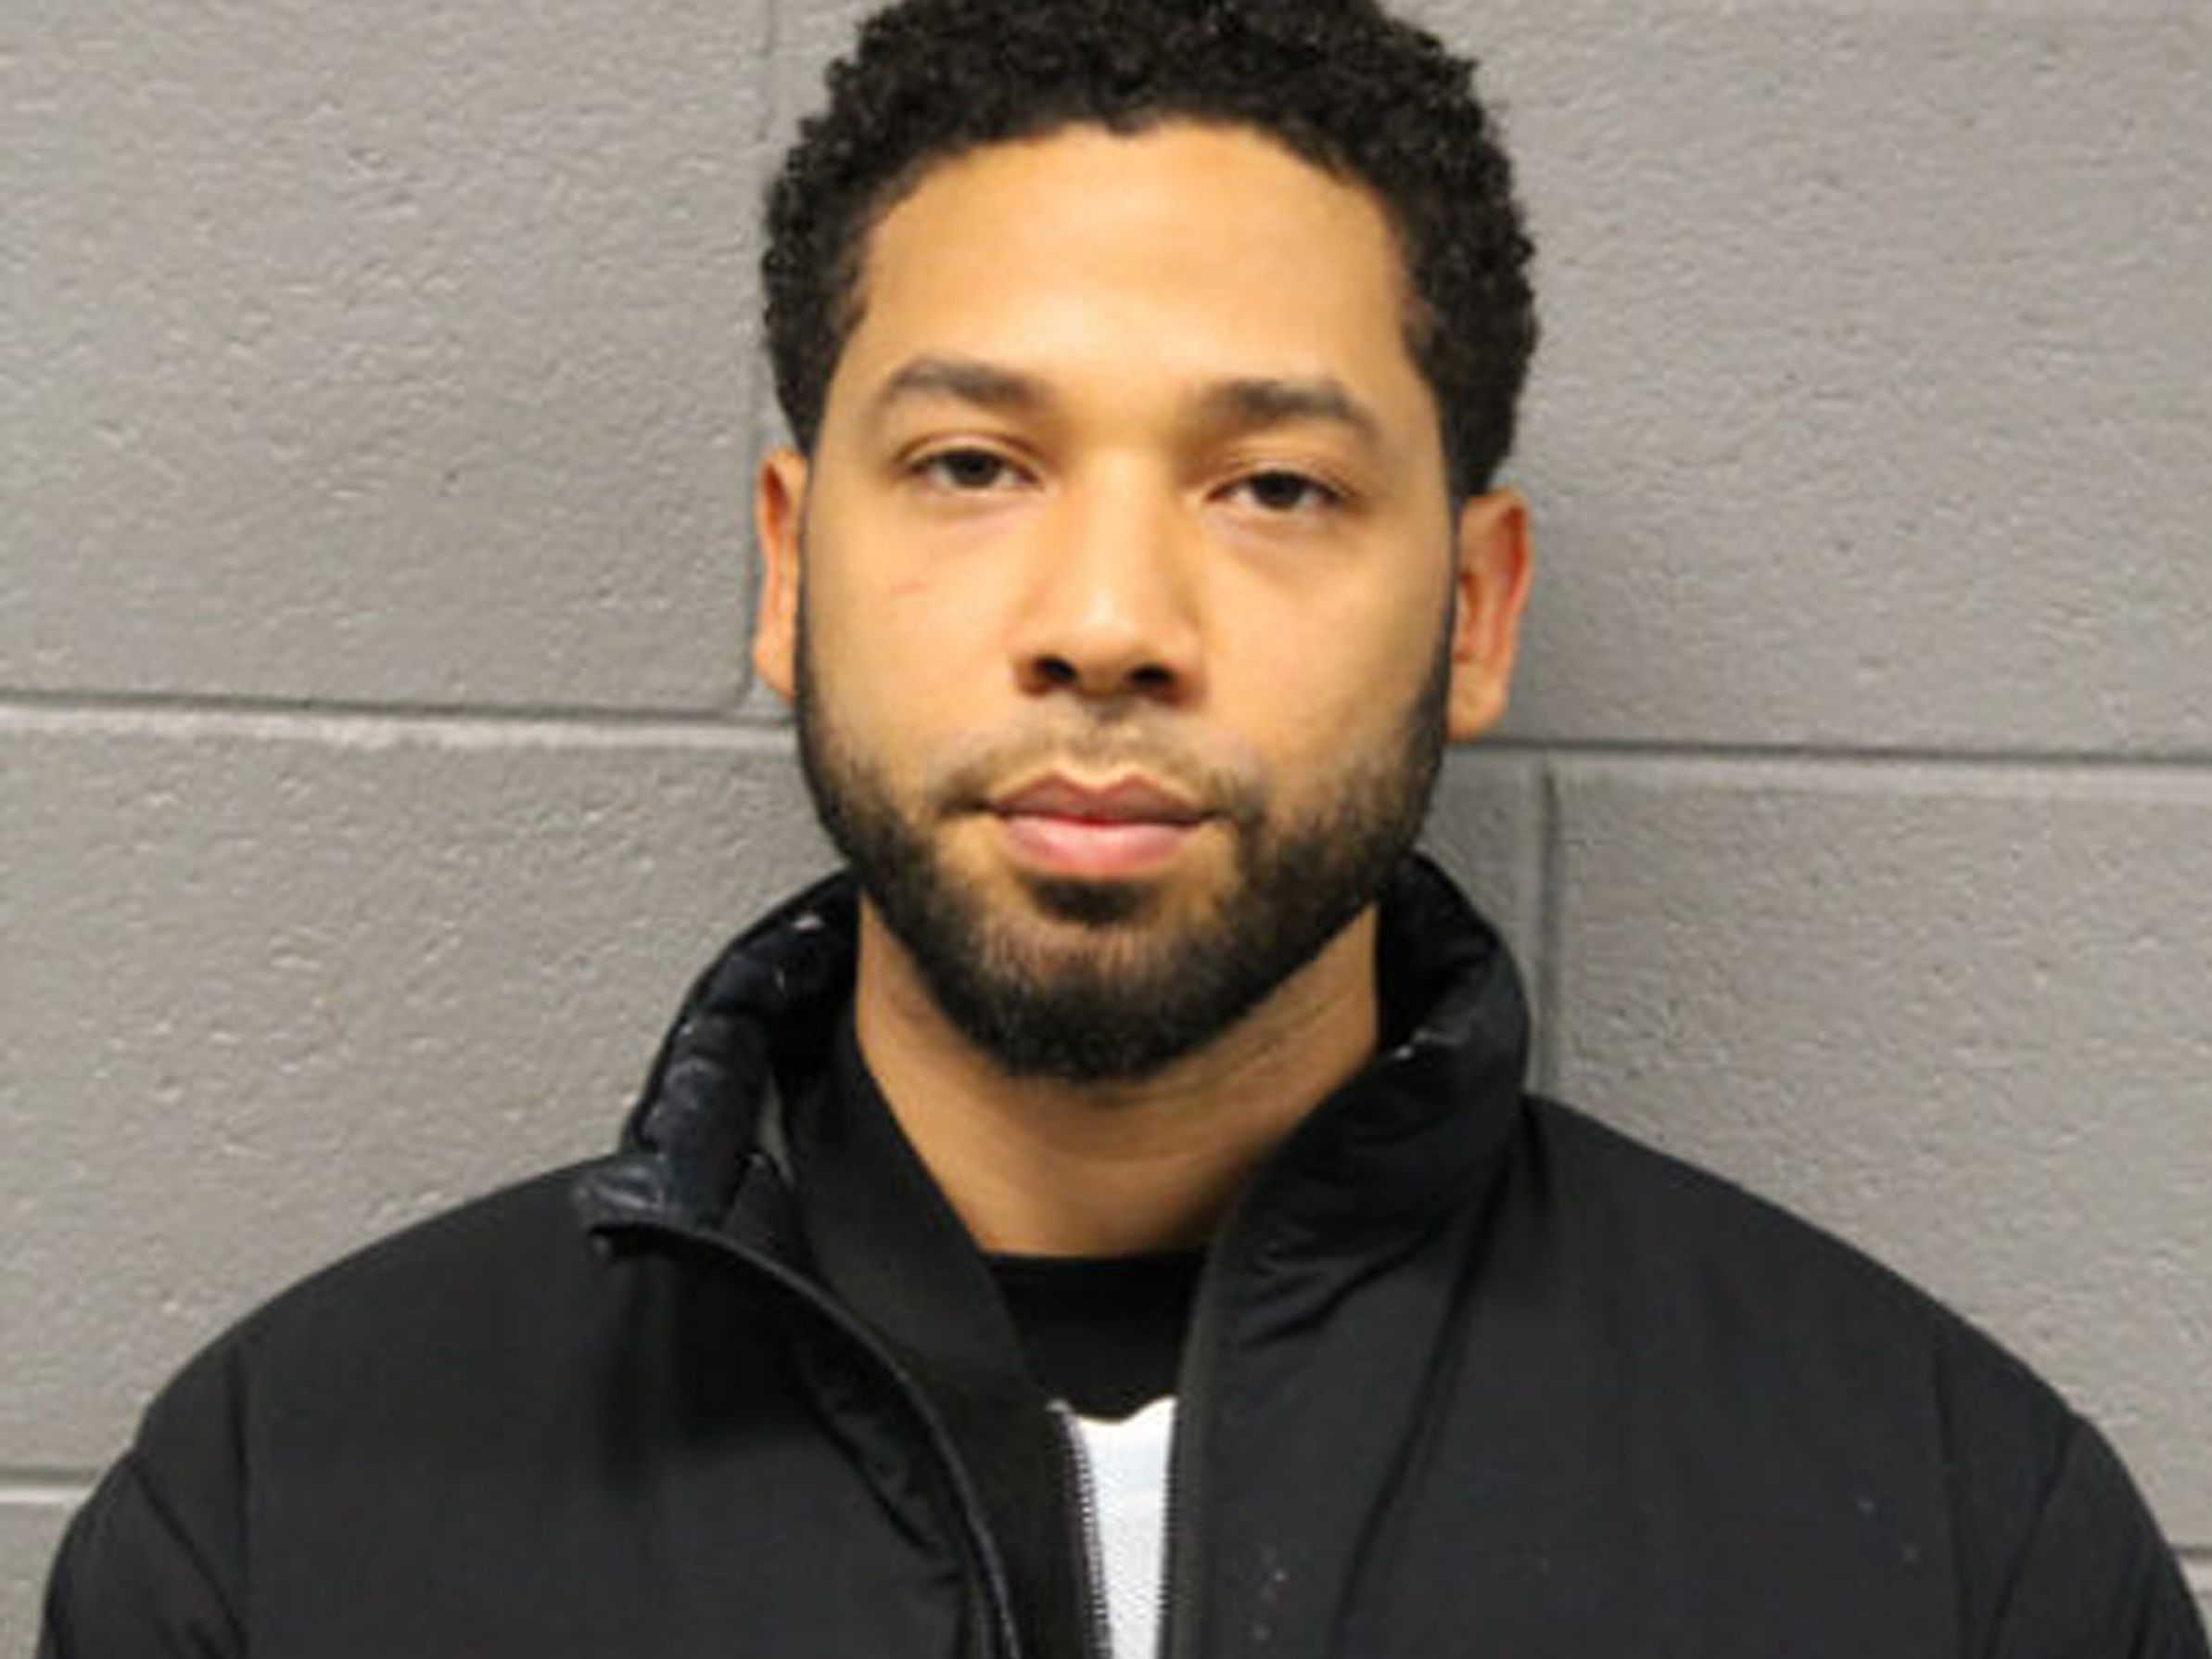 Jussie Smollett gave detailed instructions for fake attack, prosecutor says